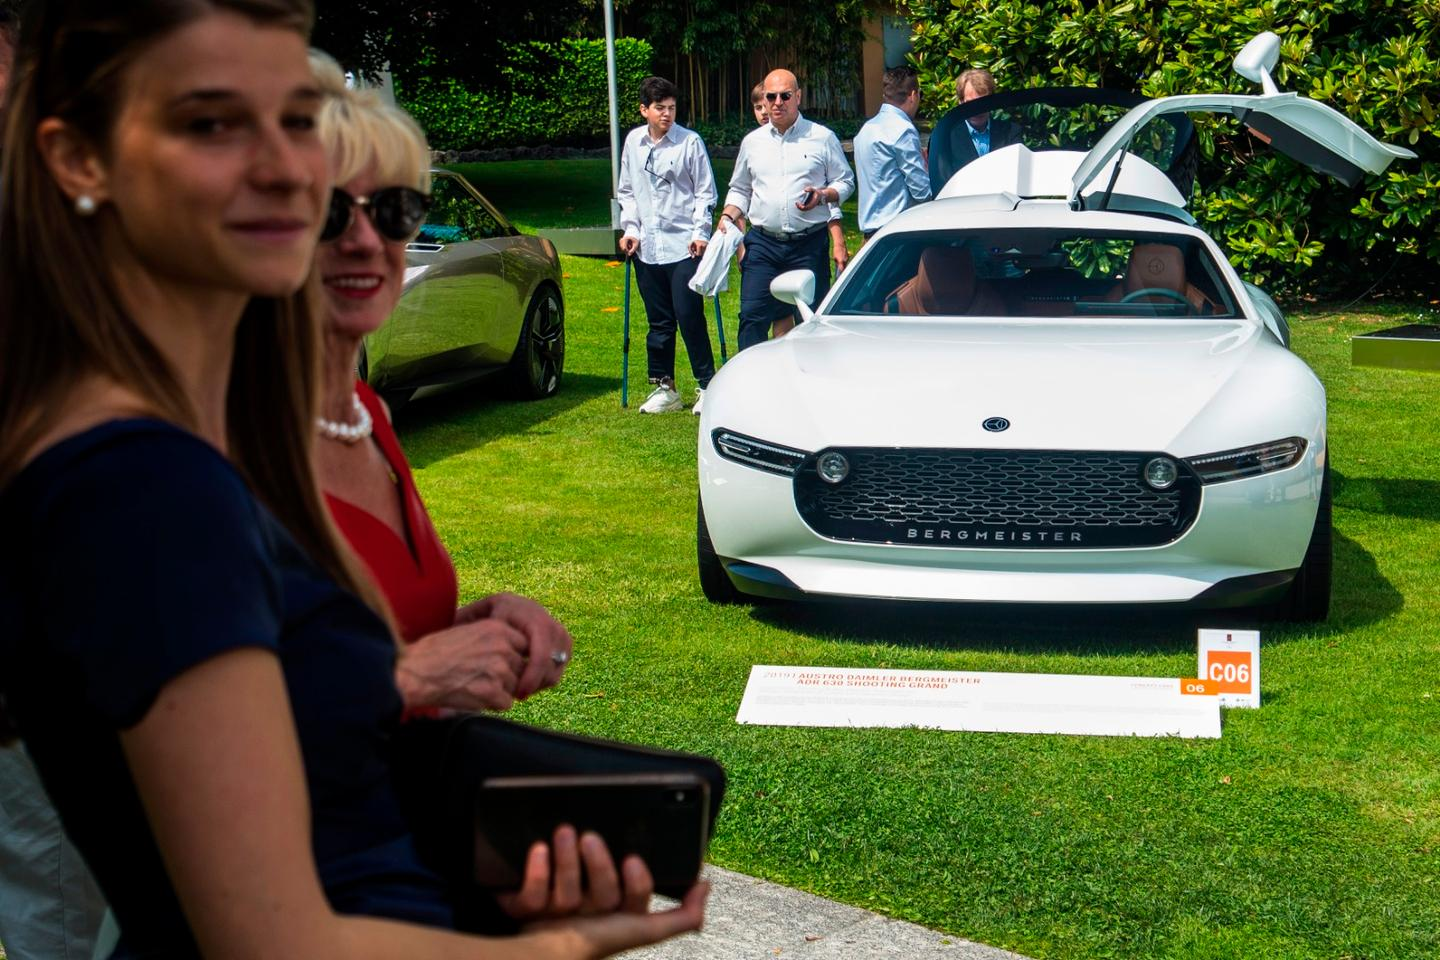 Bergmeister ADR 630: Presented at this year's Concours d'Eleganza Villa d'Este